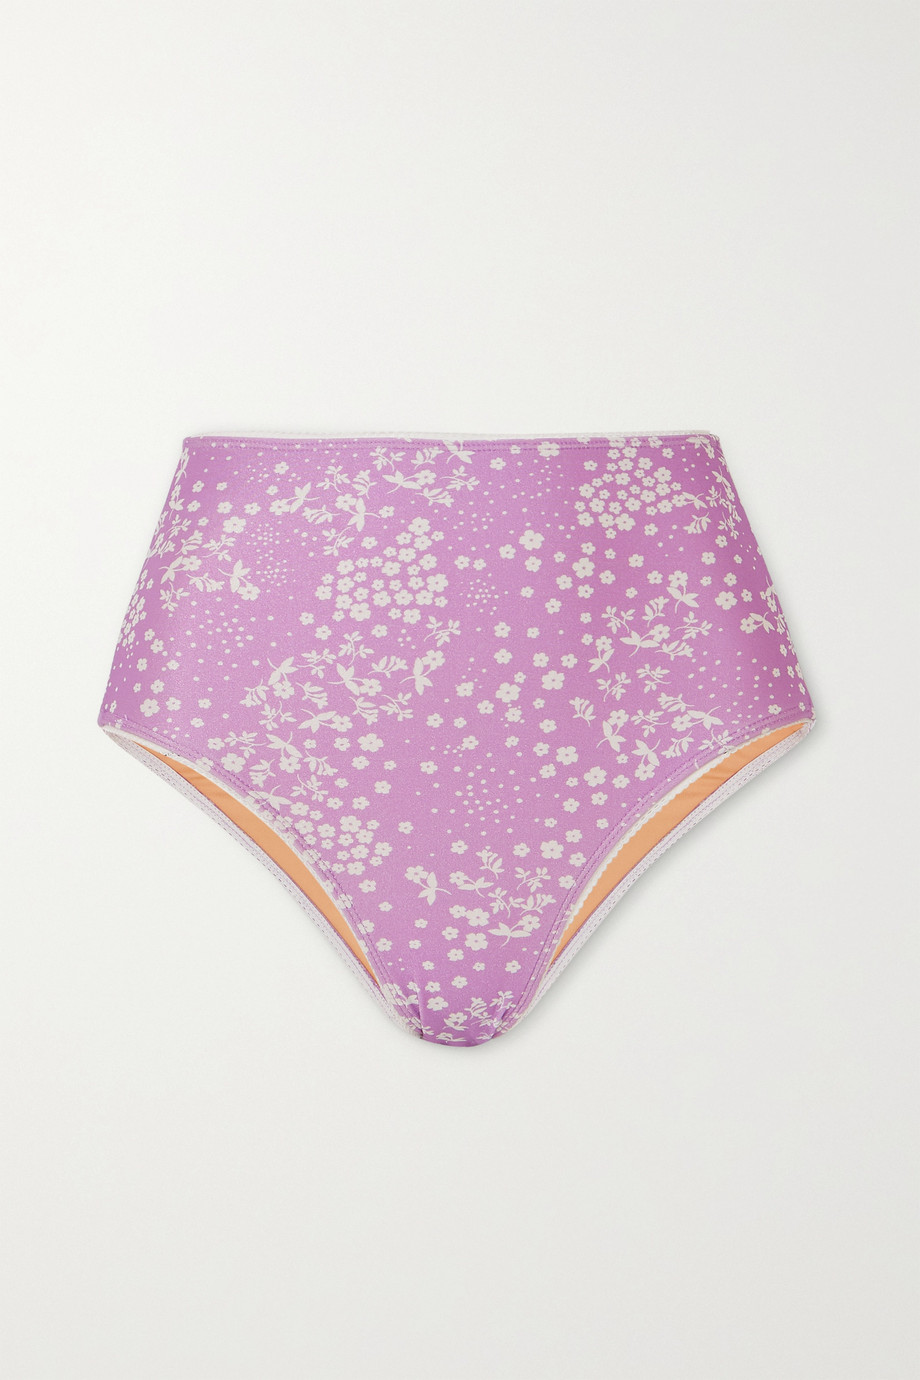 Faithfull The Brand Bonnieux floral-print bikini briefs